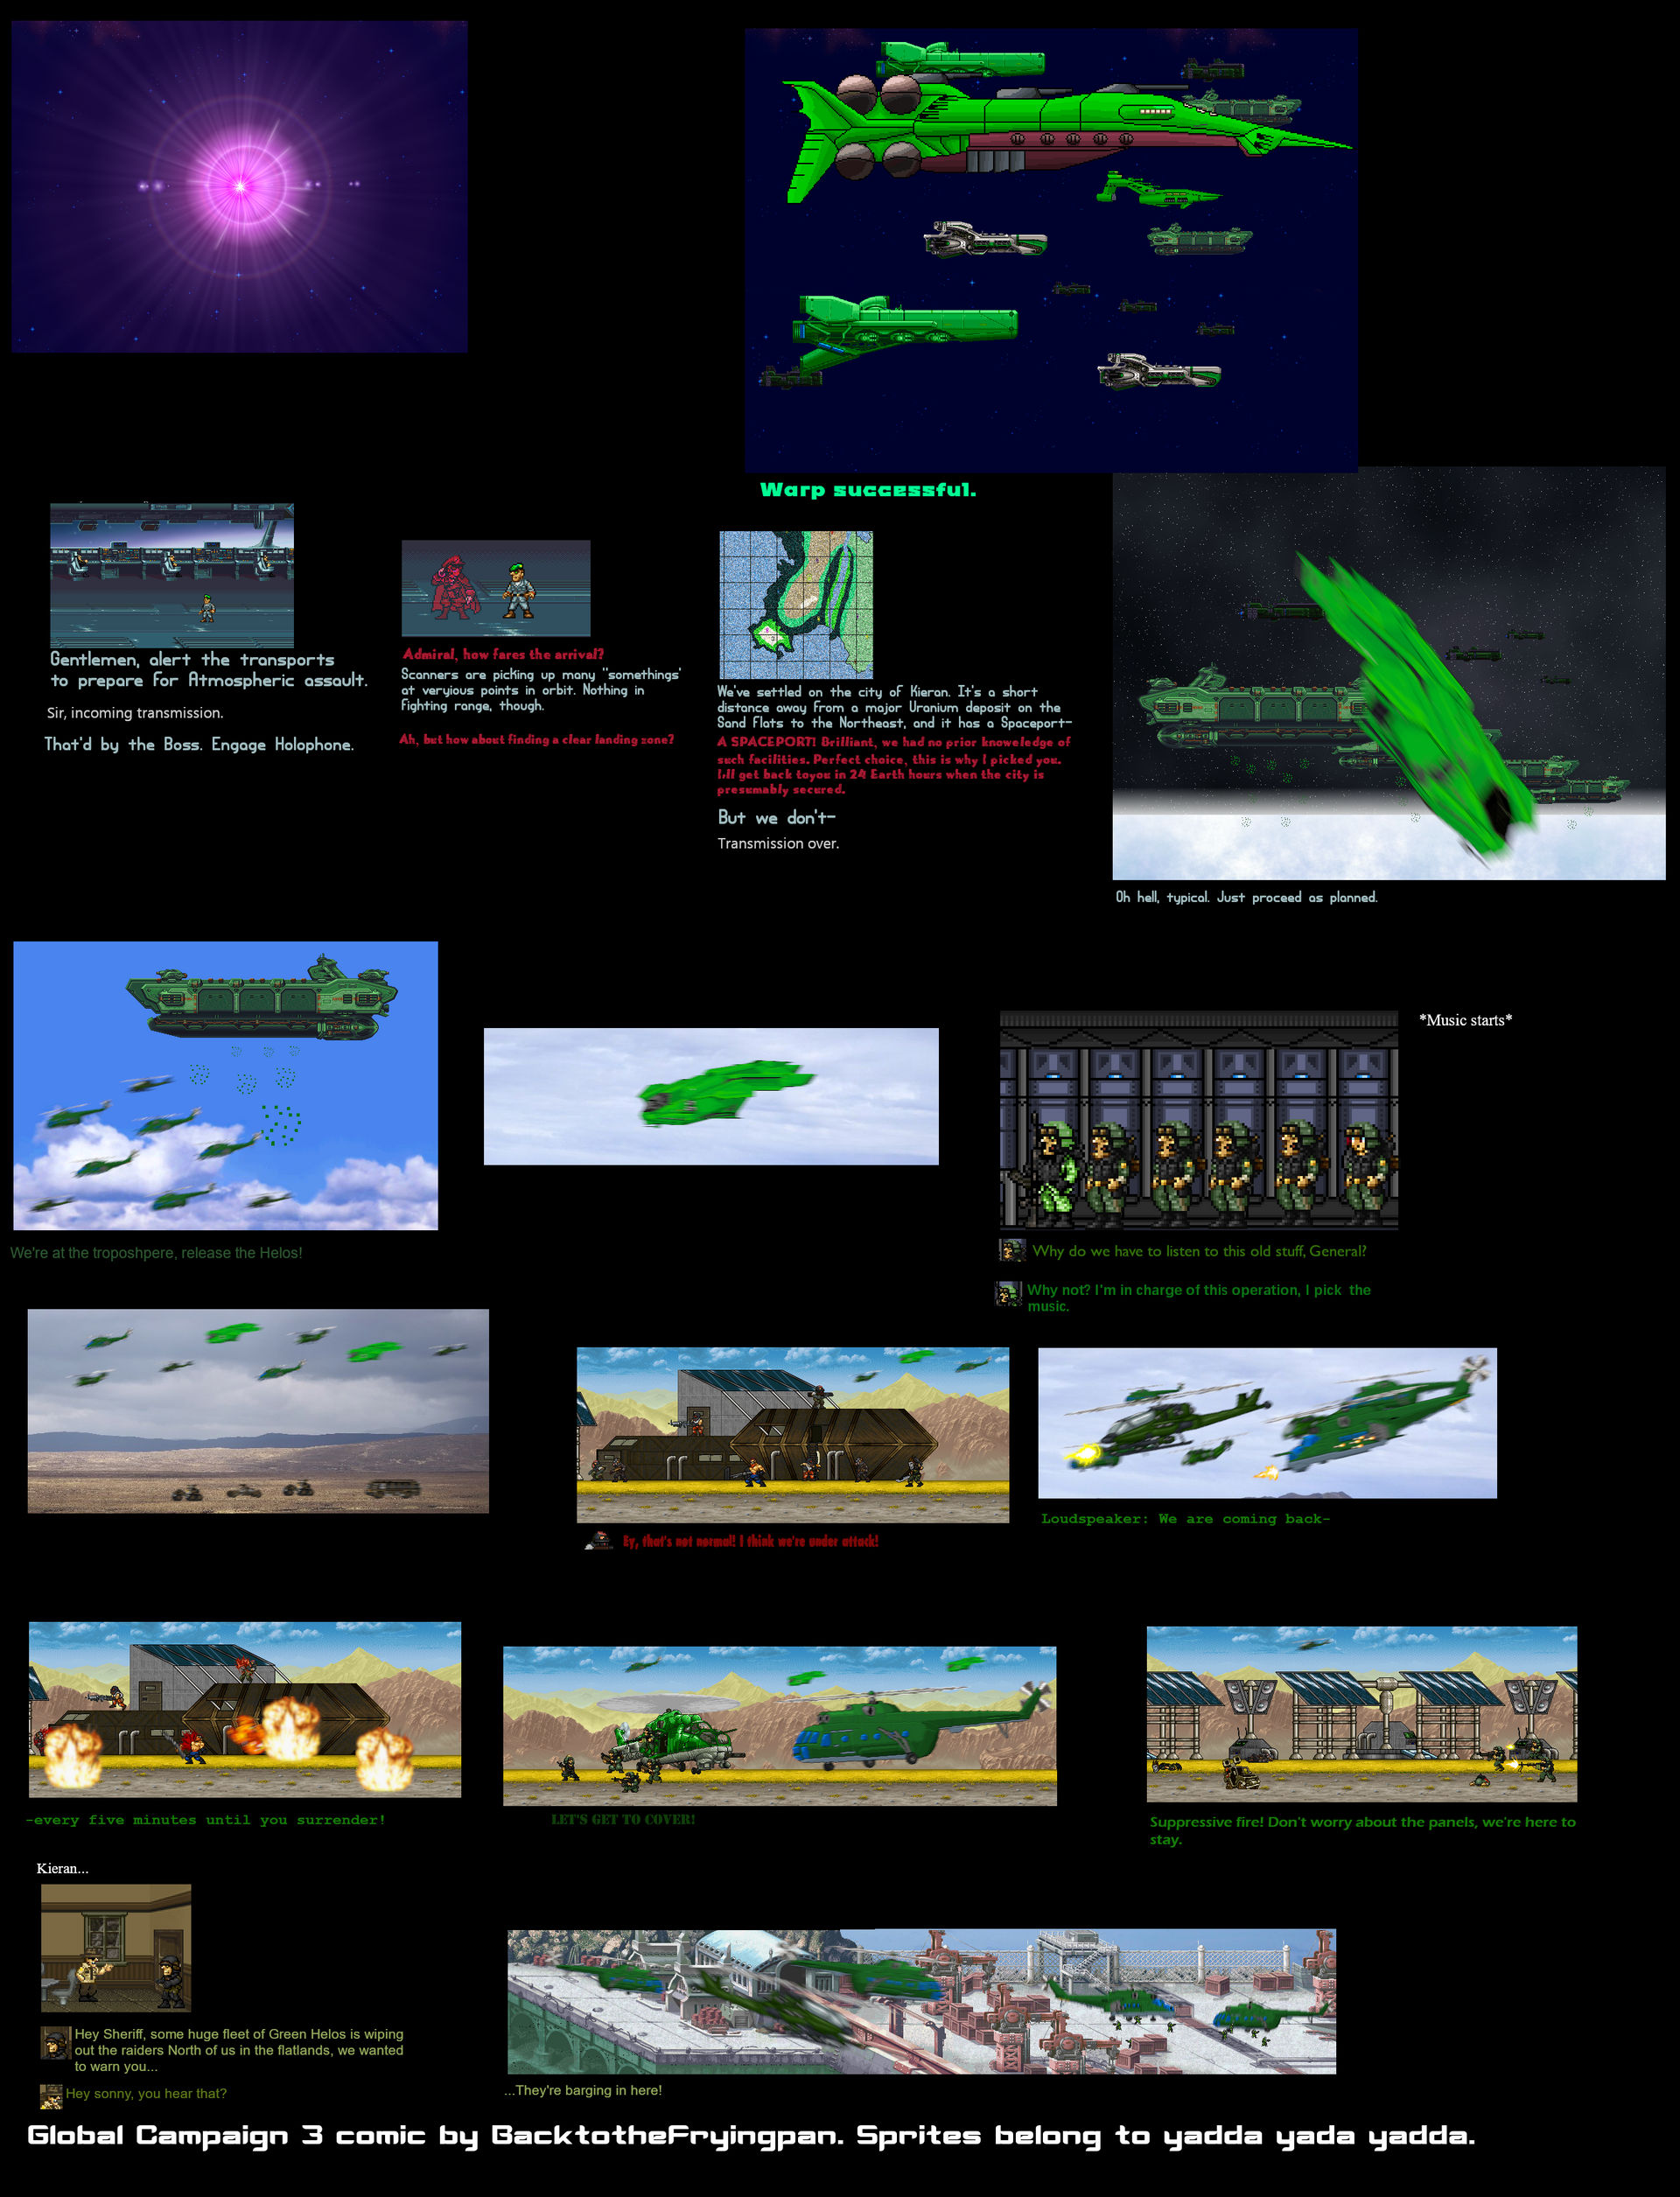 sprite_wars_global_campaign_3_part_01_by